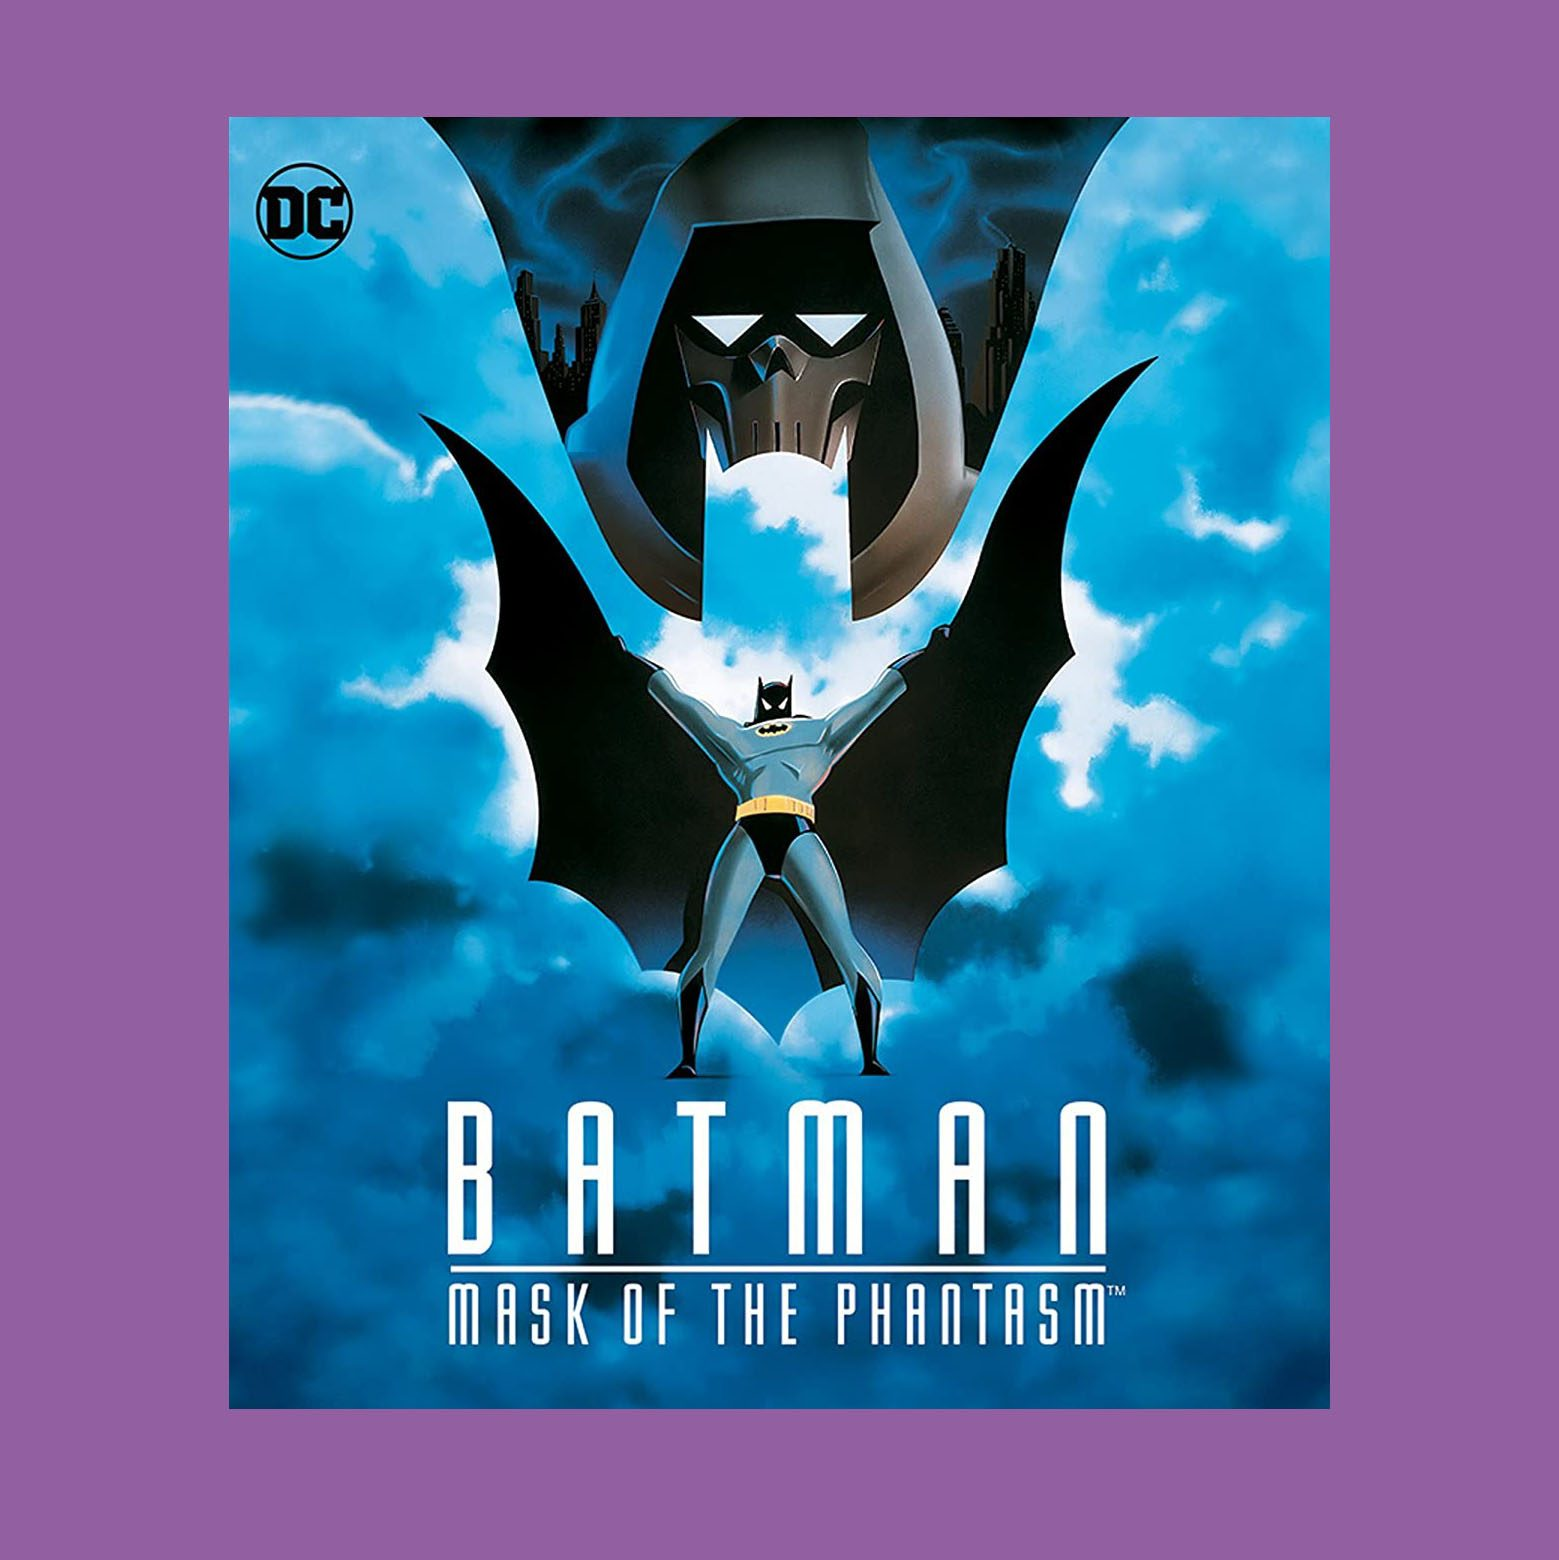 Batman: Mask of the Phantasm (PG)